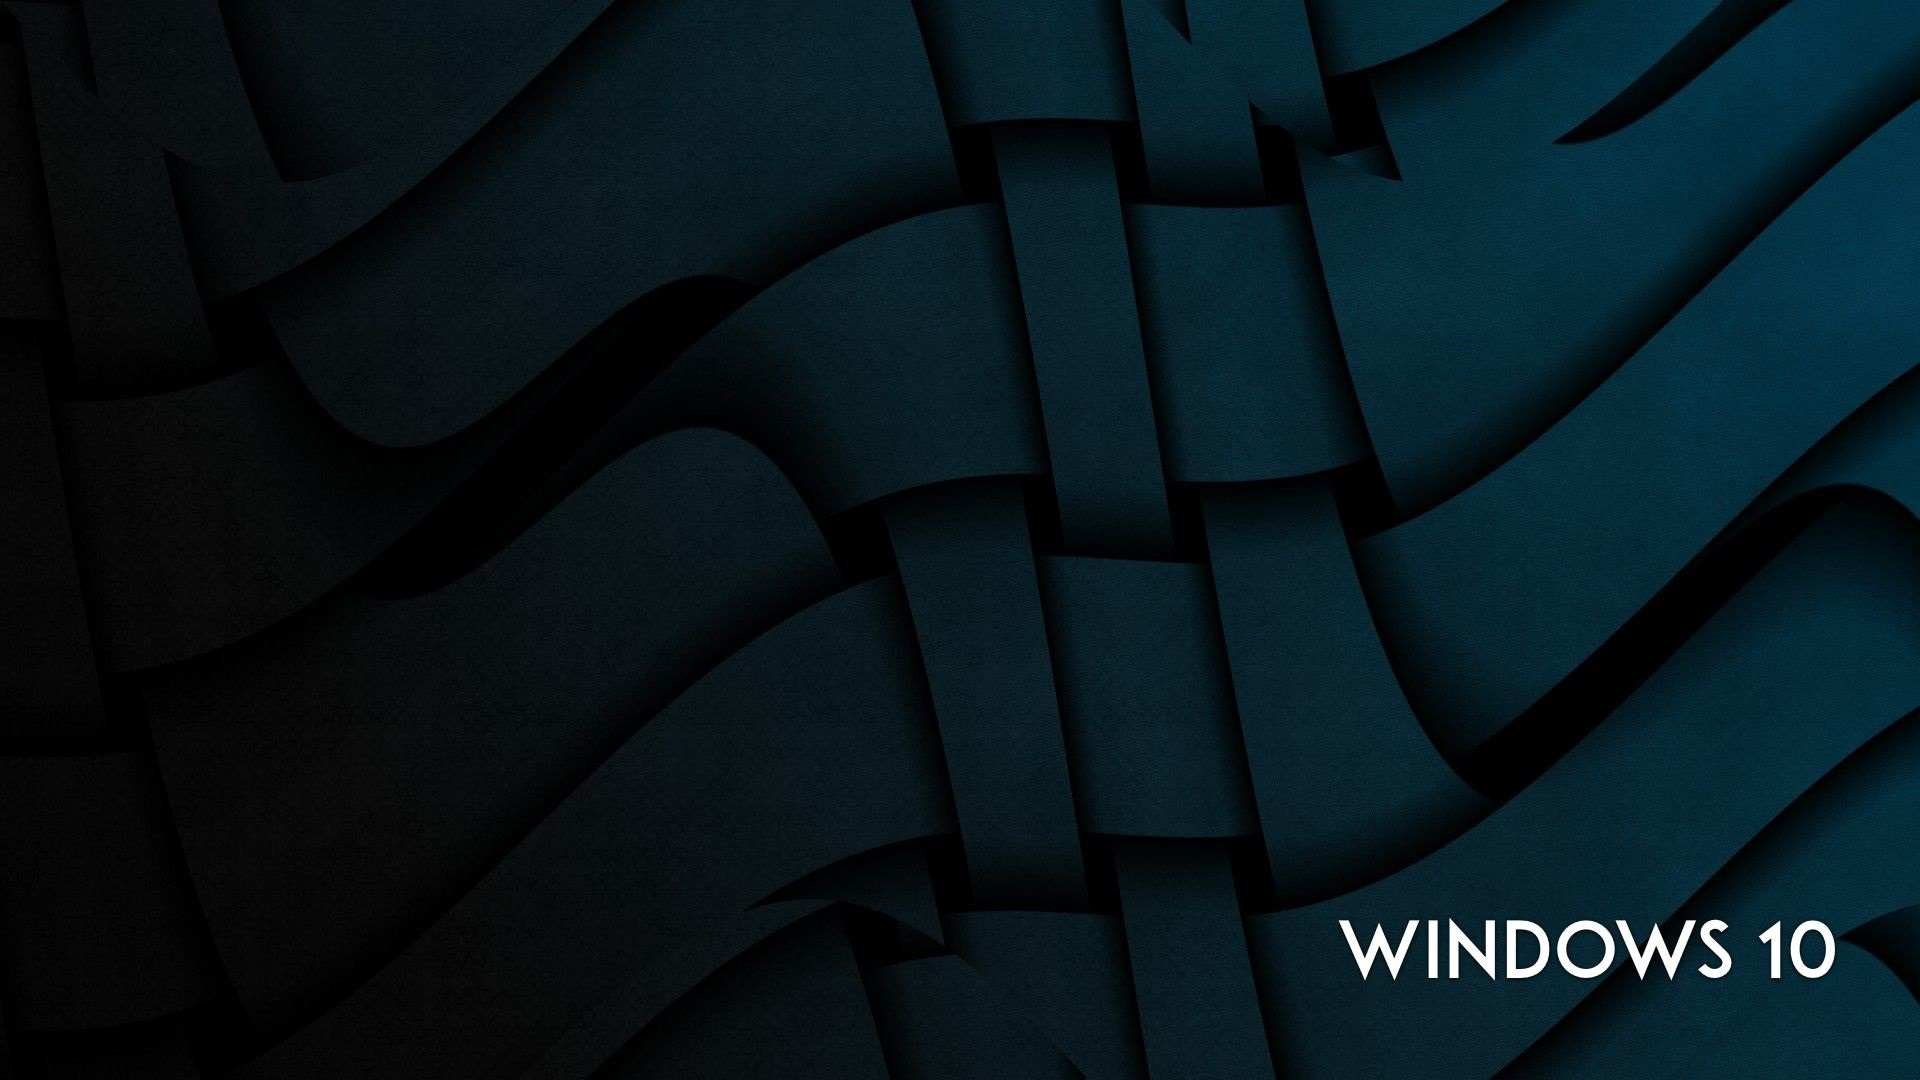 Wallpaper Windows 10 System Abstract Curves Background 1920x1080